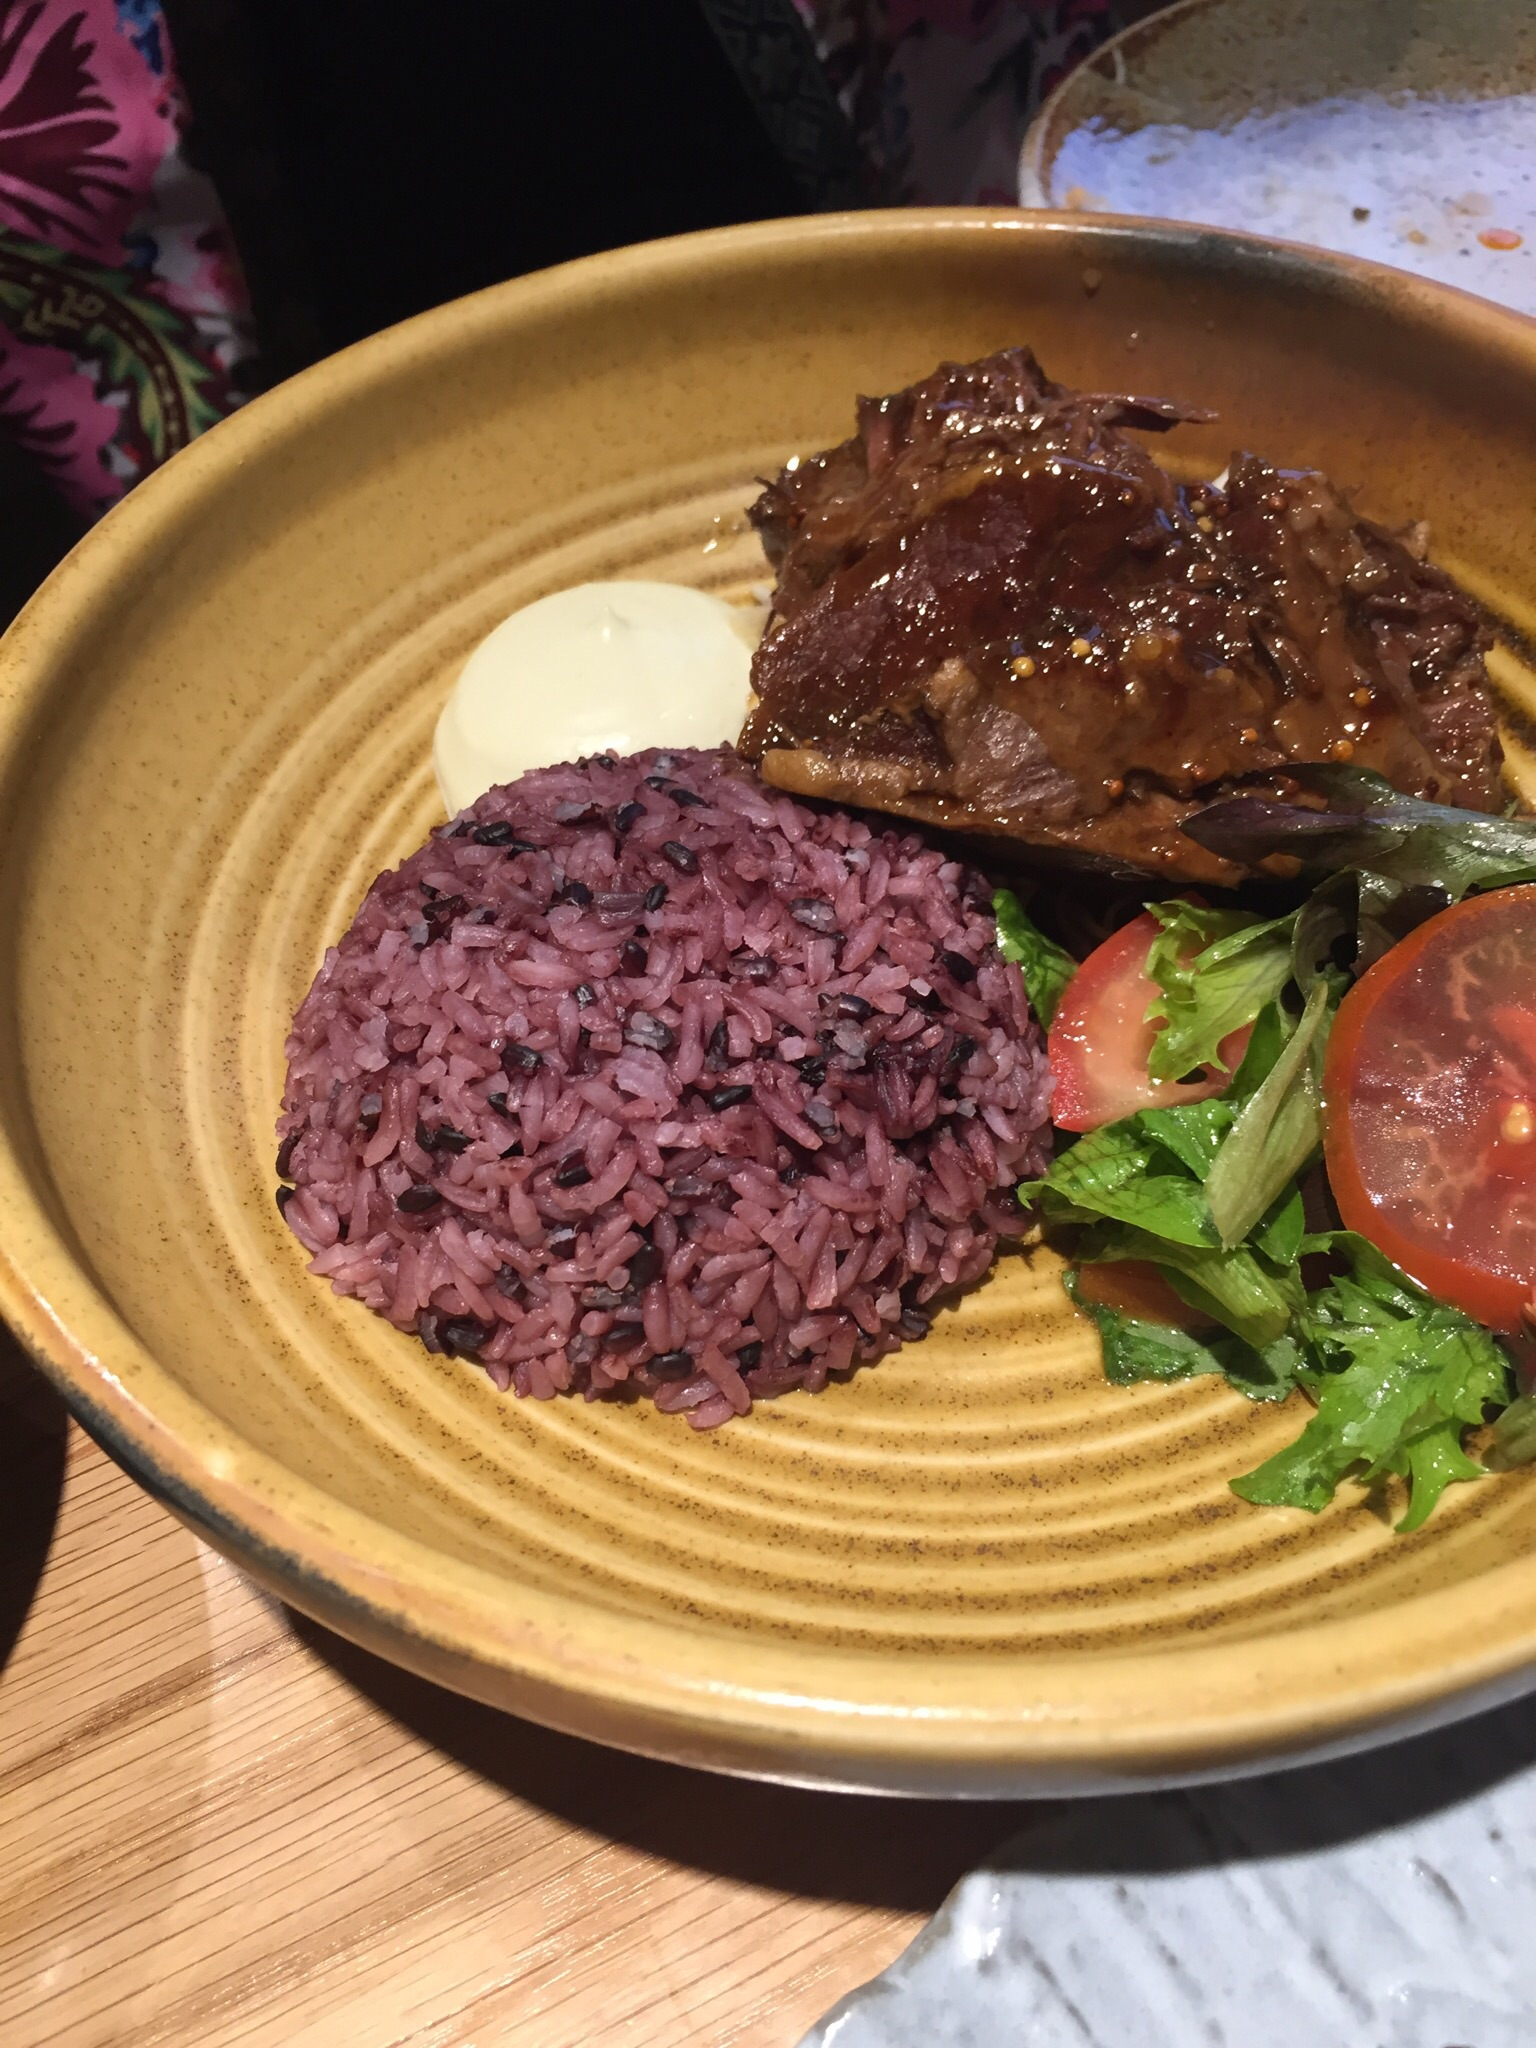 Lovely rich and tender beef, interesting rice and a salad to lighten the flavour.